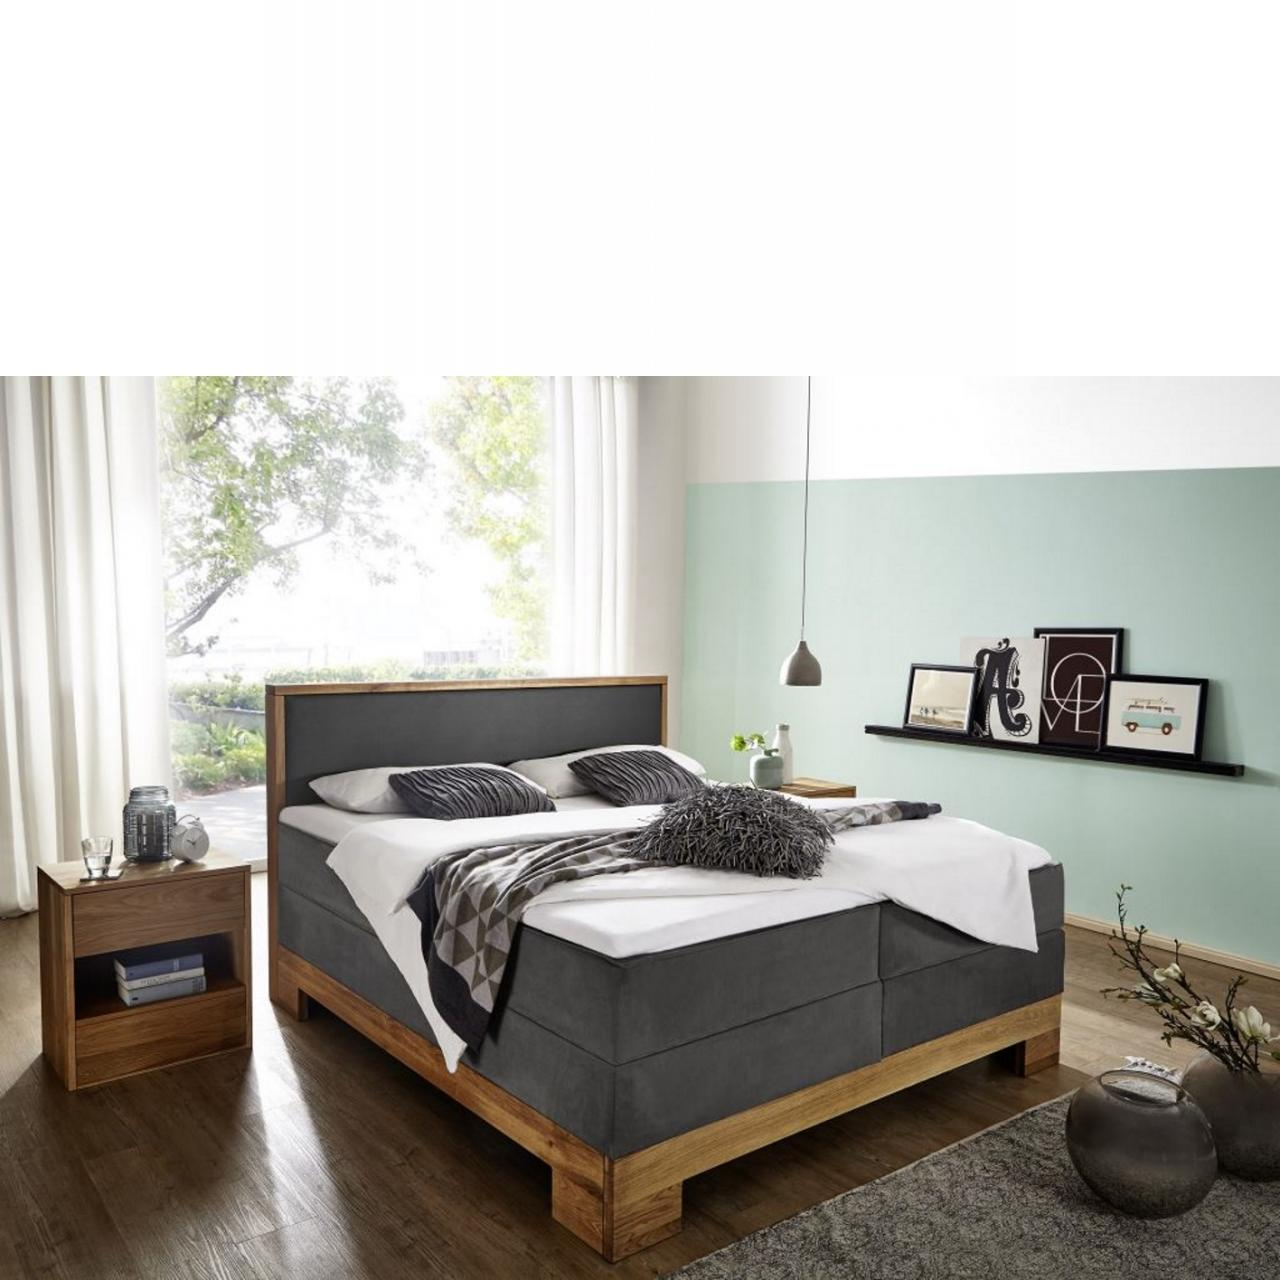 Bett Wildeiche Massiv 180x210 Cm Grau Mobel Jahnichen Center